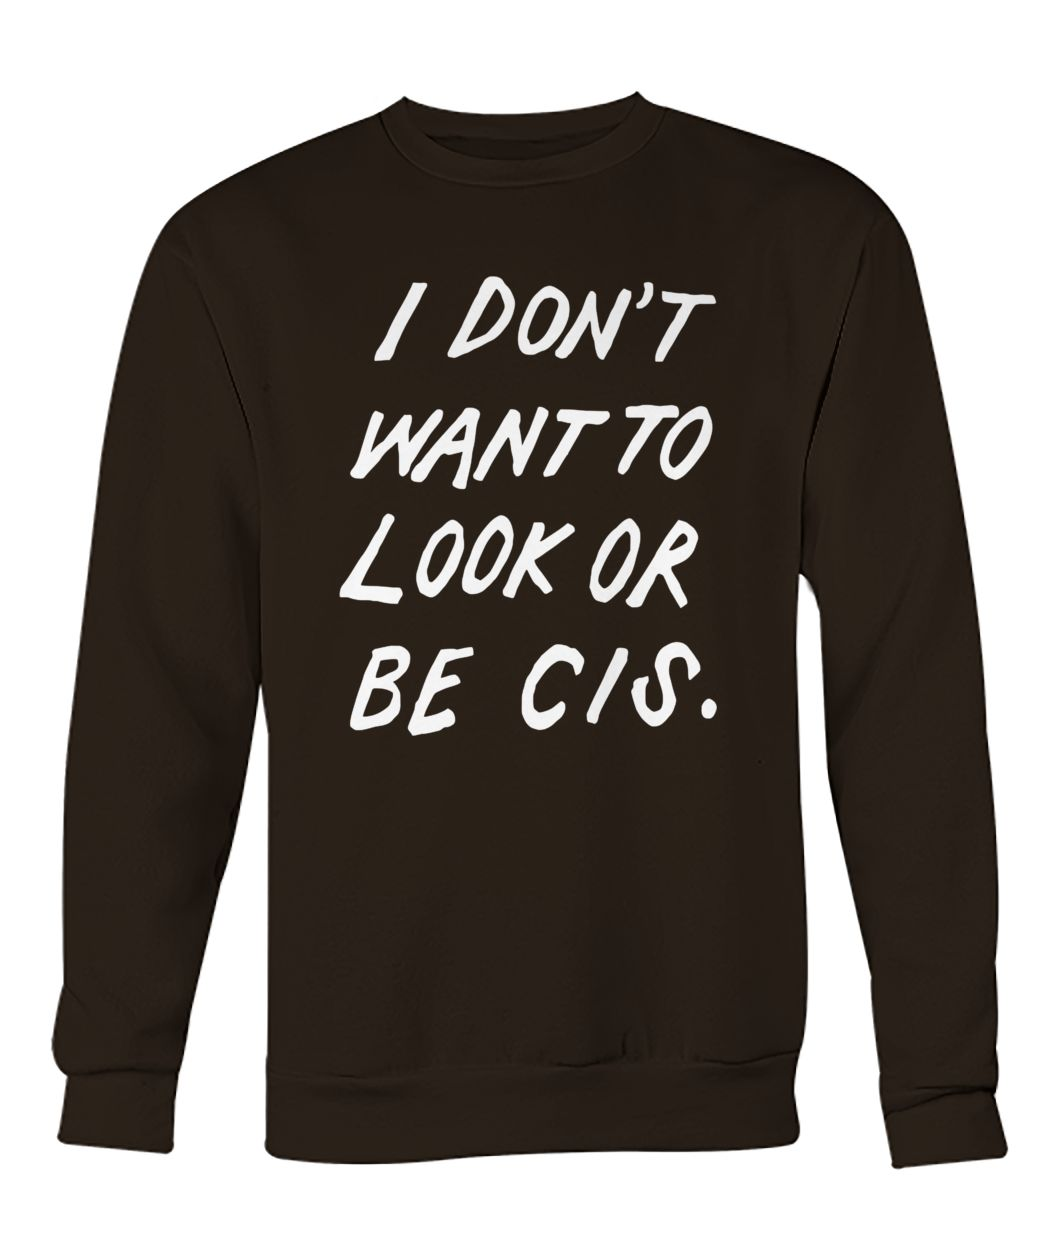 I don't want to look or be cis crew neck sweatshirt